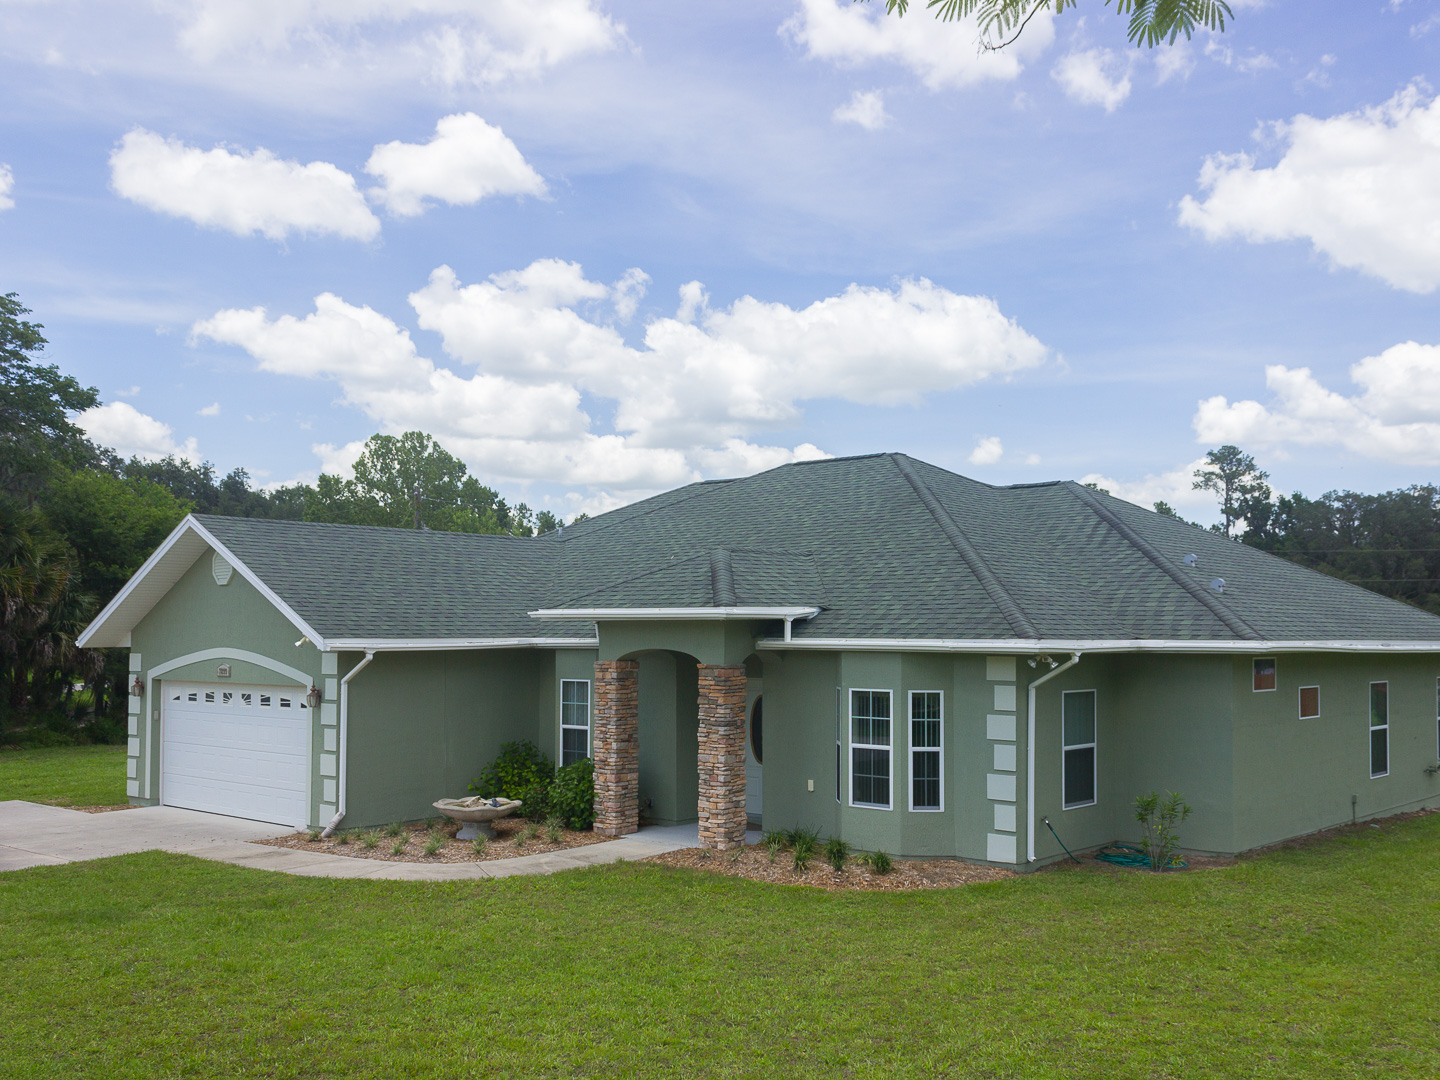 7899 NW 118th Court-104